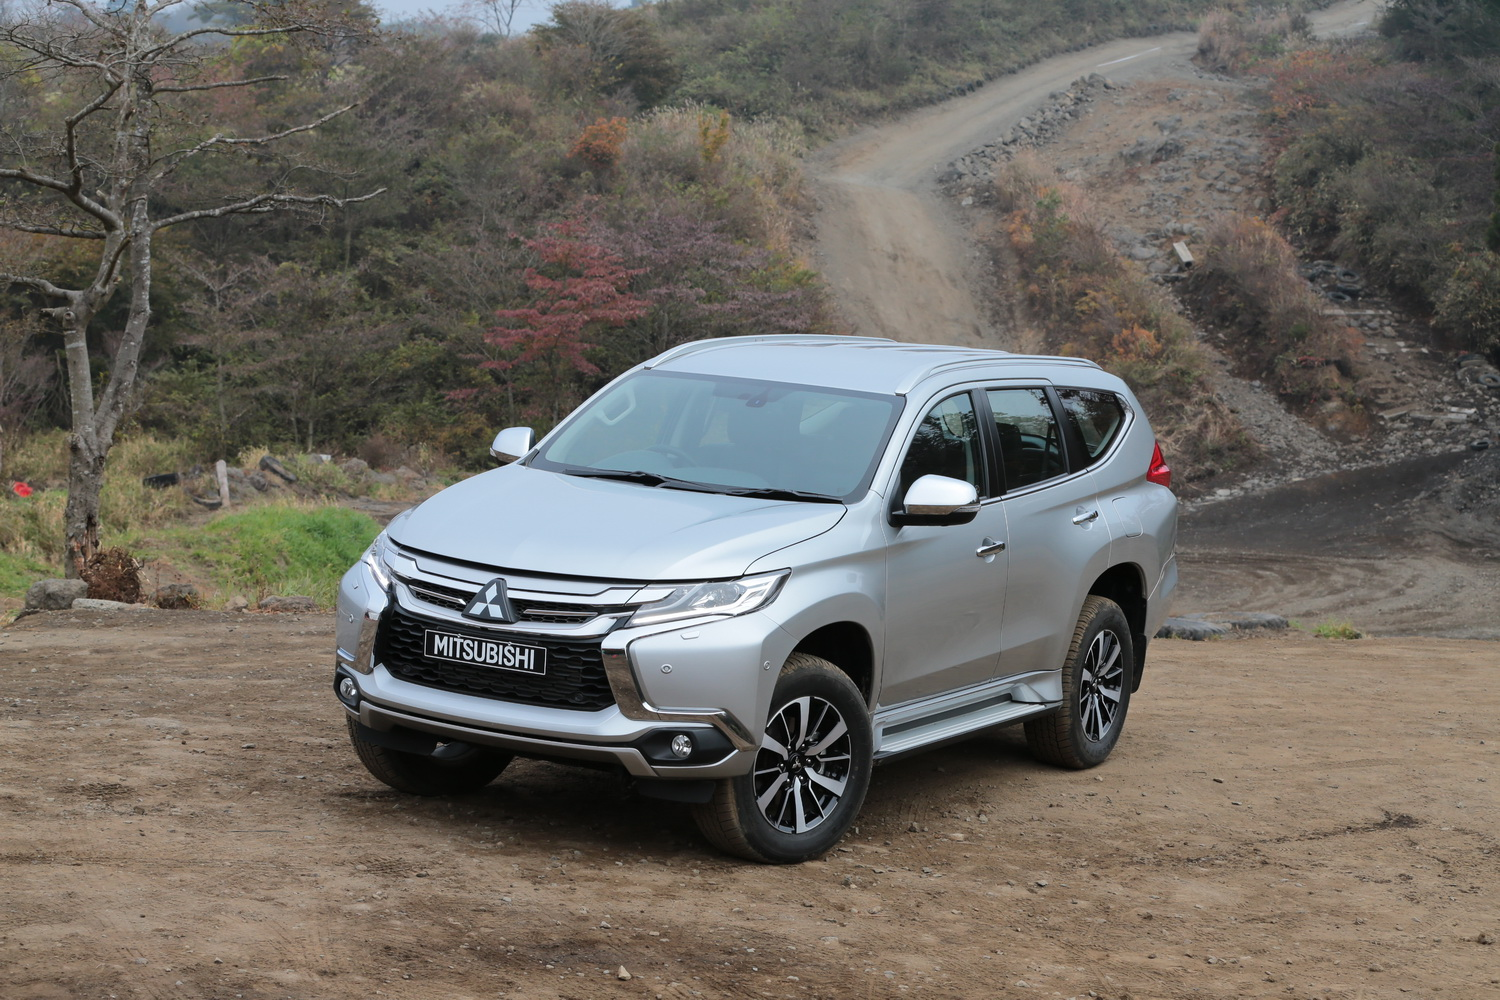 2016 Mitsubishi Pajero Sport review - first drive ...